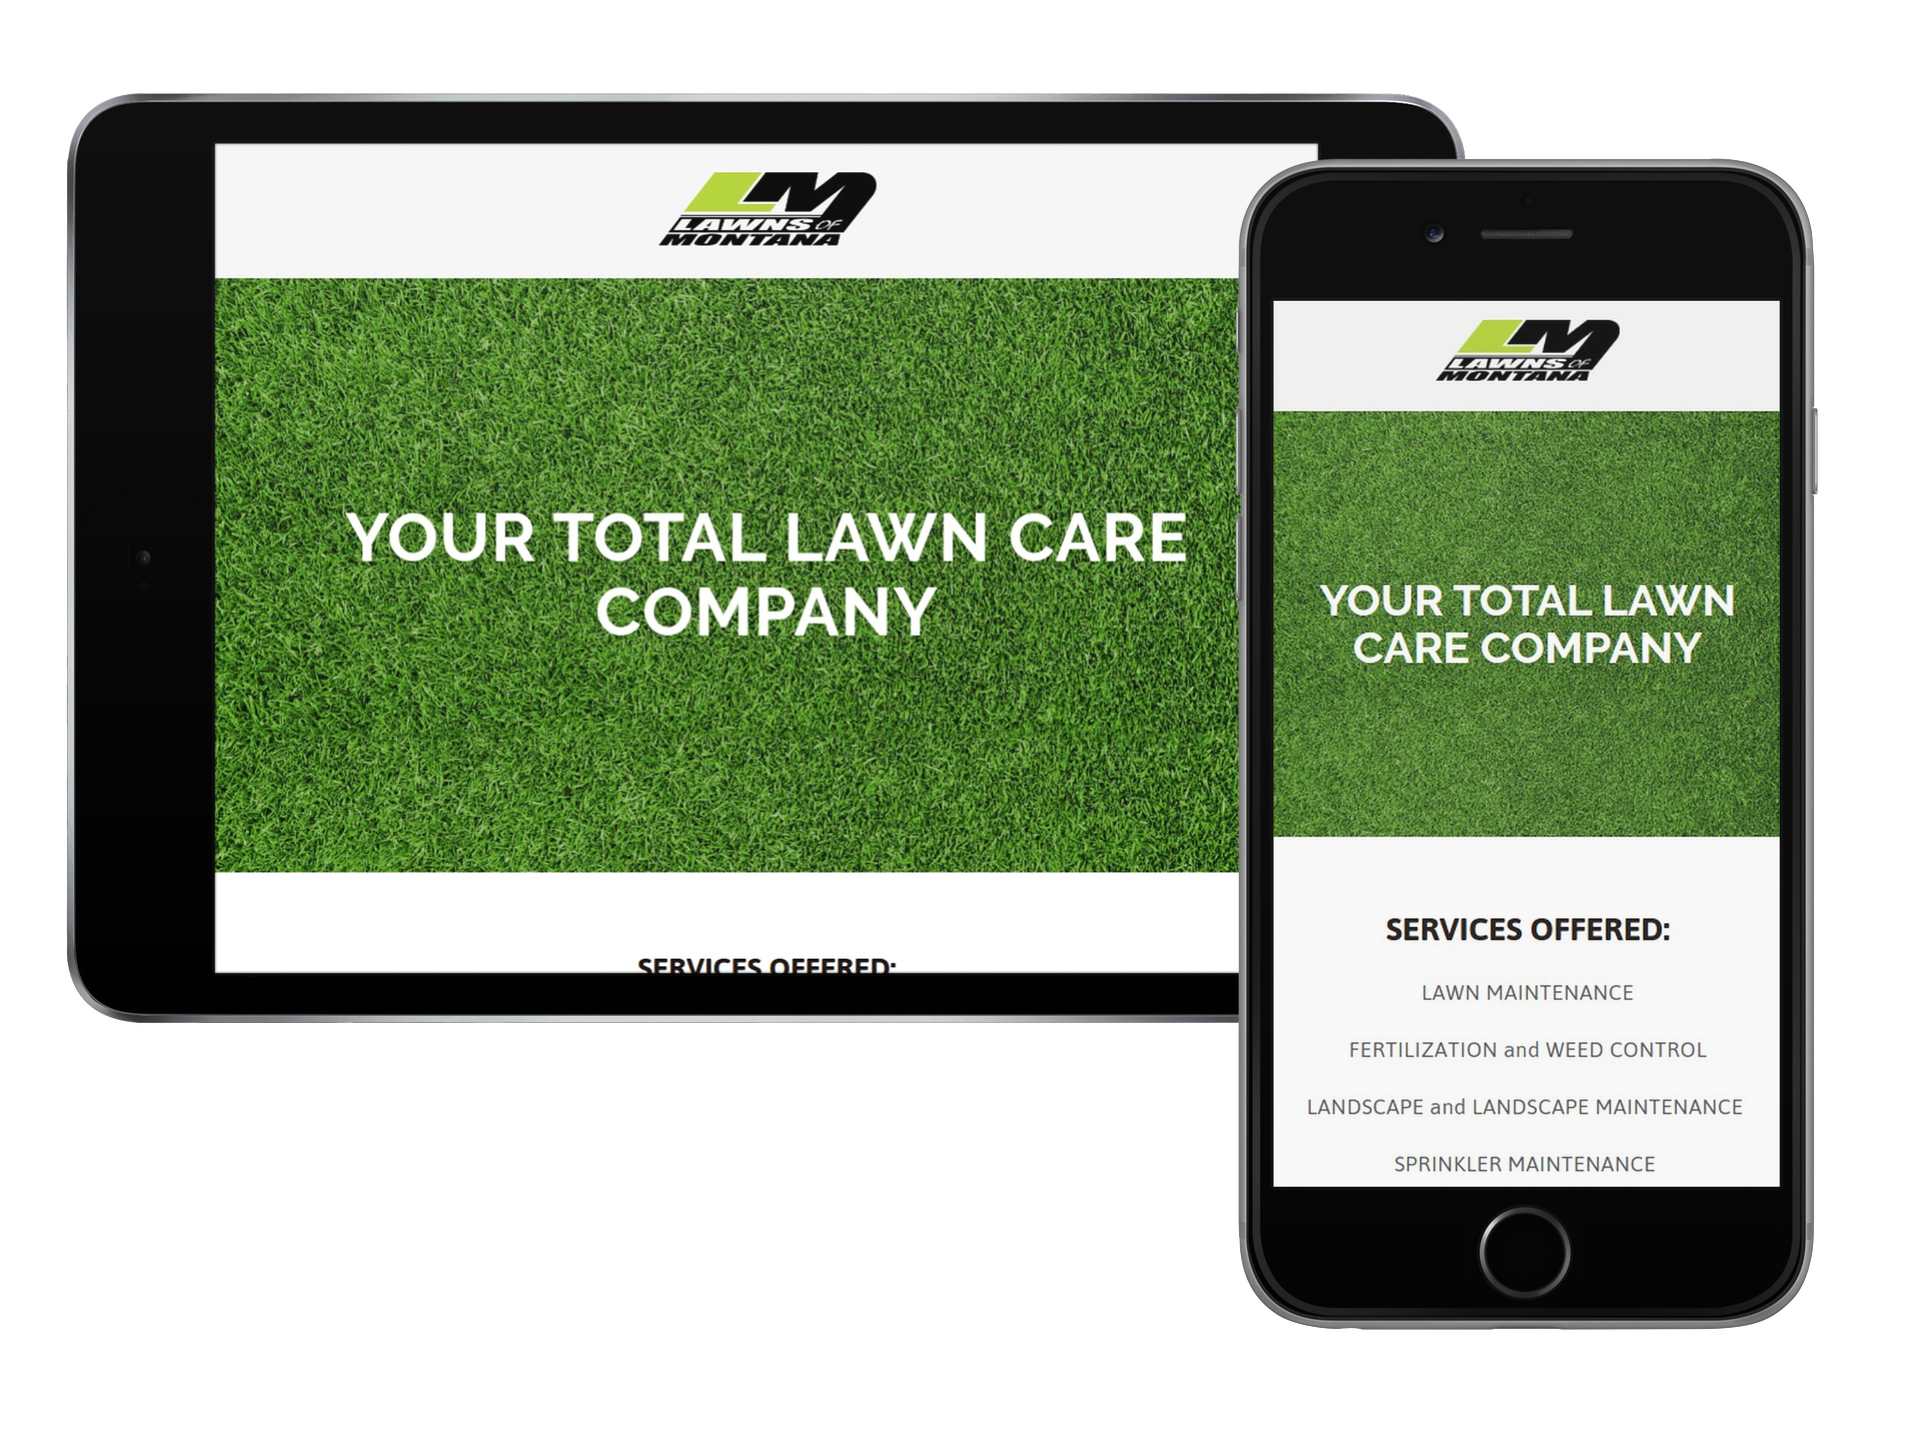 Lawns of Montana - Landscaping